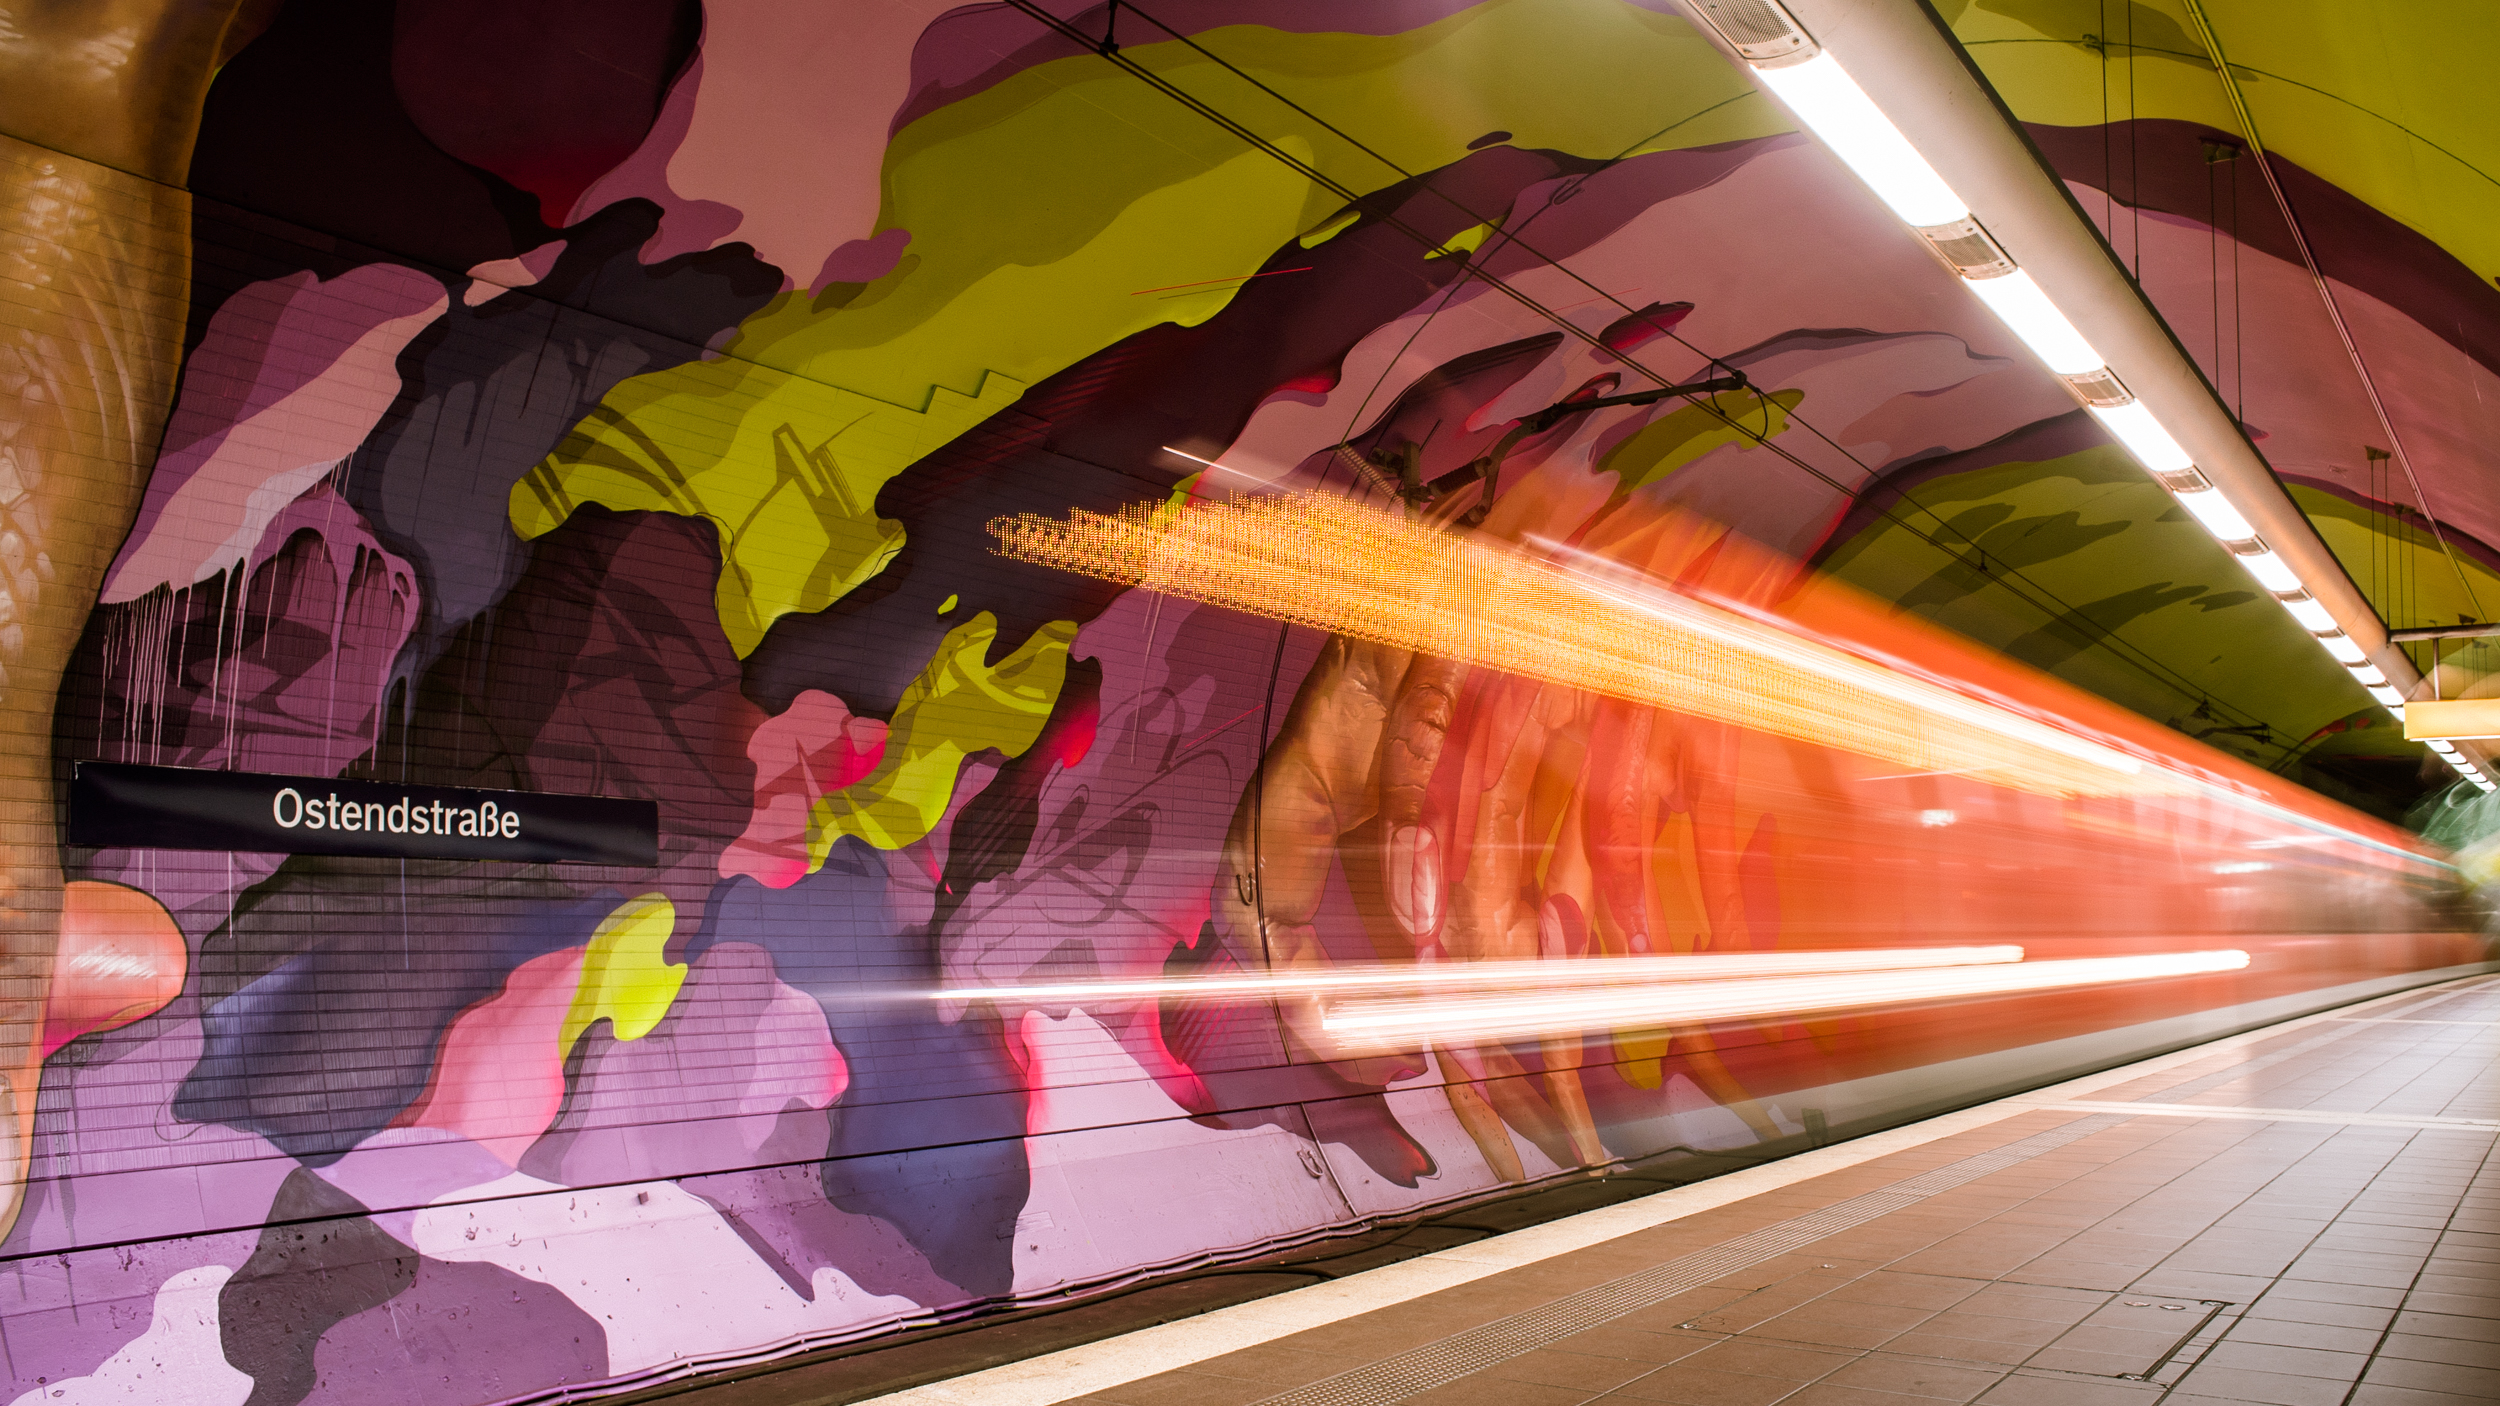 A work by Does - Ostendstrasse frankfurt germany tunnel 33